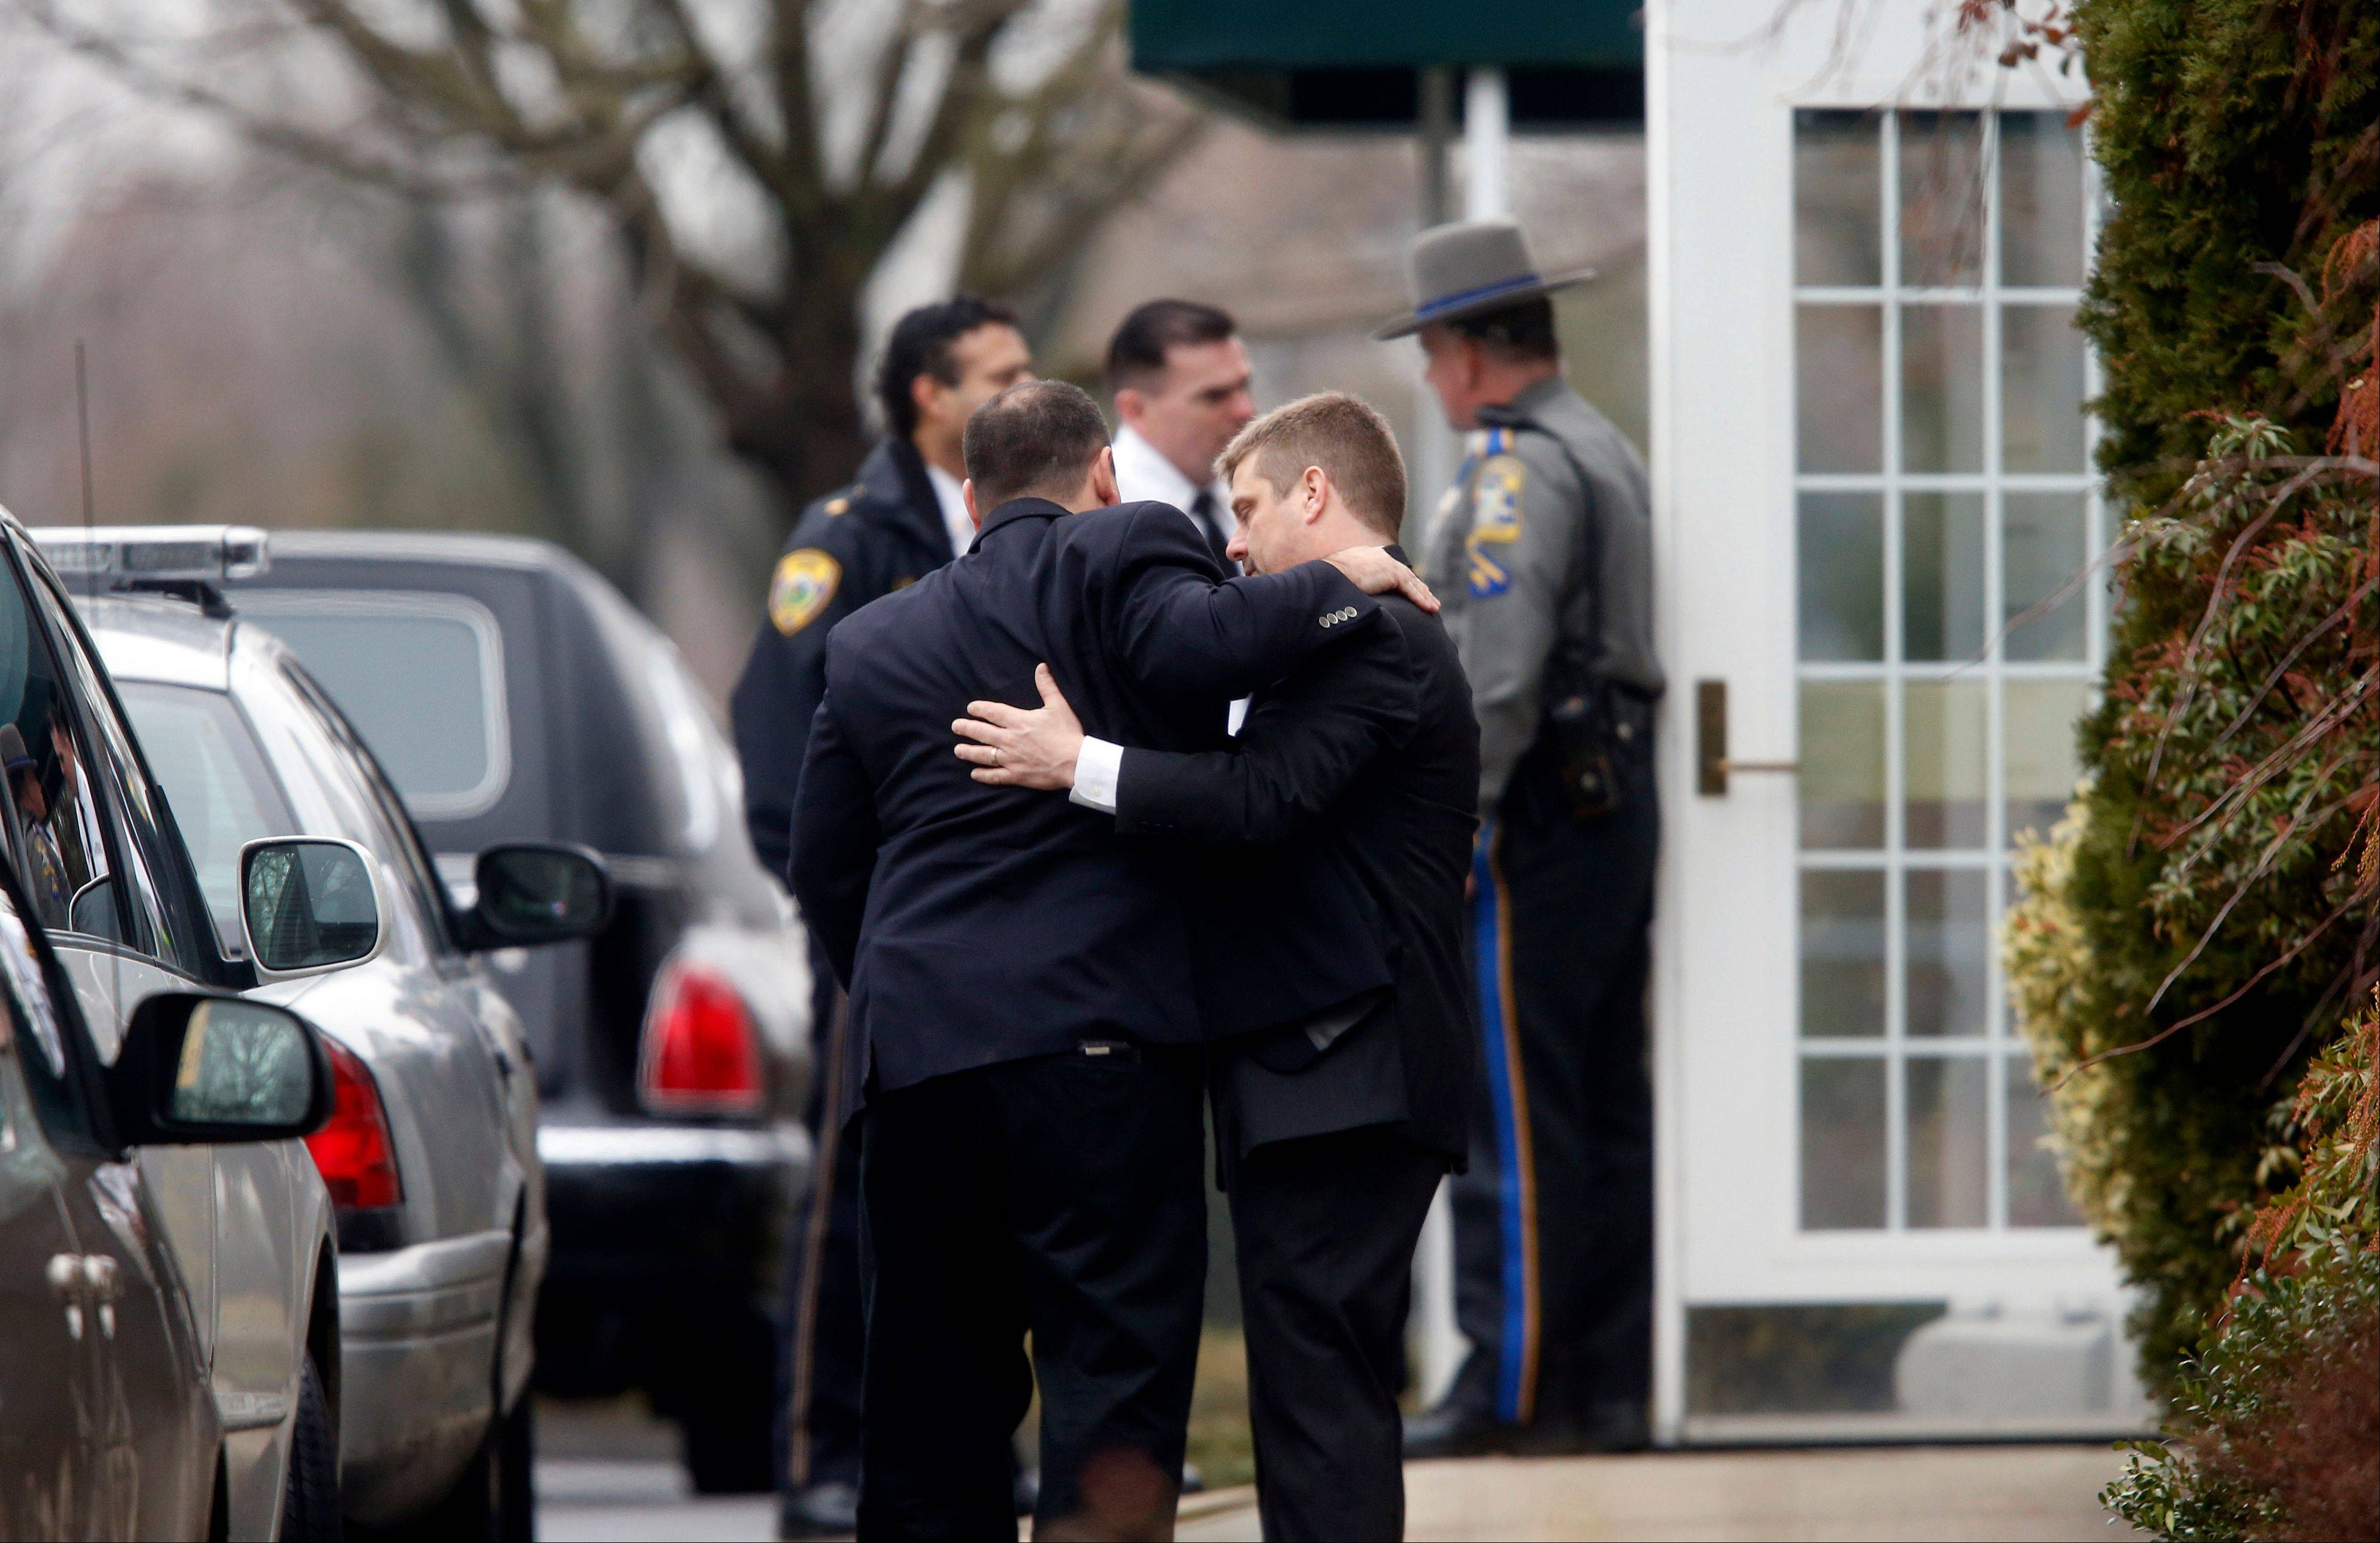 A mourner is comforted as he arrives at a funeral service for 6-year-old Noah Pozner, Monday, Dec. 17, 2012, in Fairfield, Conn. Pozner was killed when a gunman walked into Sandy Hook Elementary School in Newtown Friday and opened fire, killing 26 people, including 20 children.